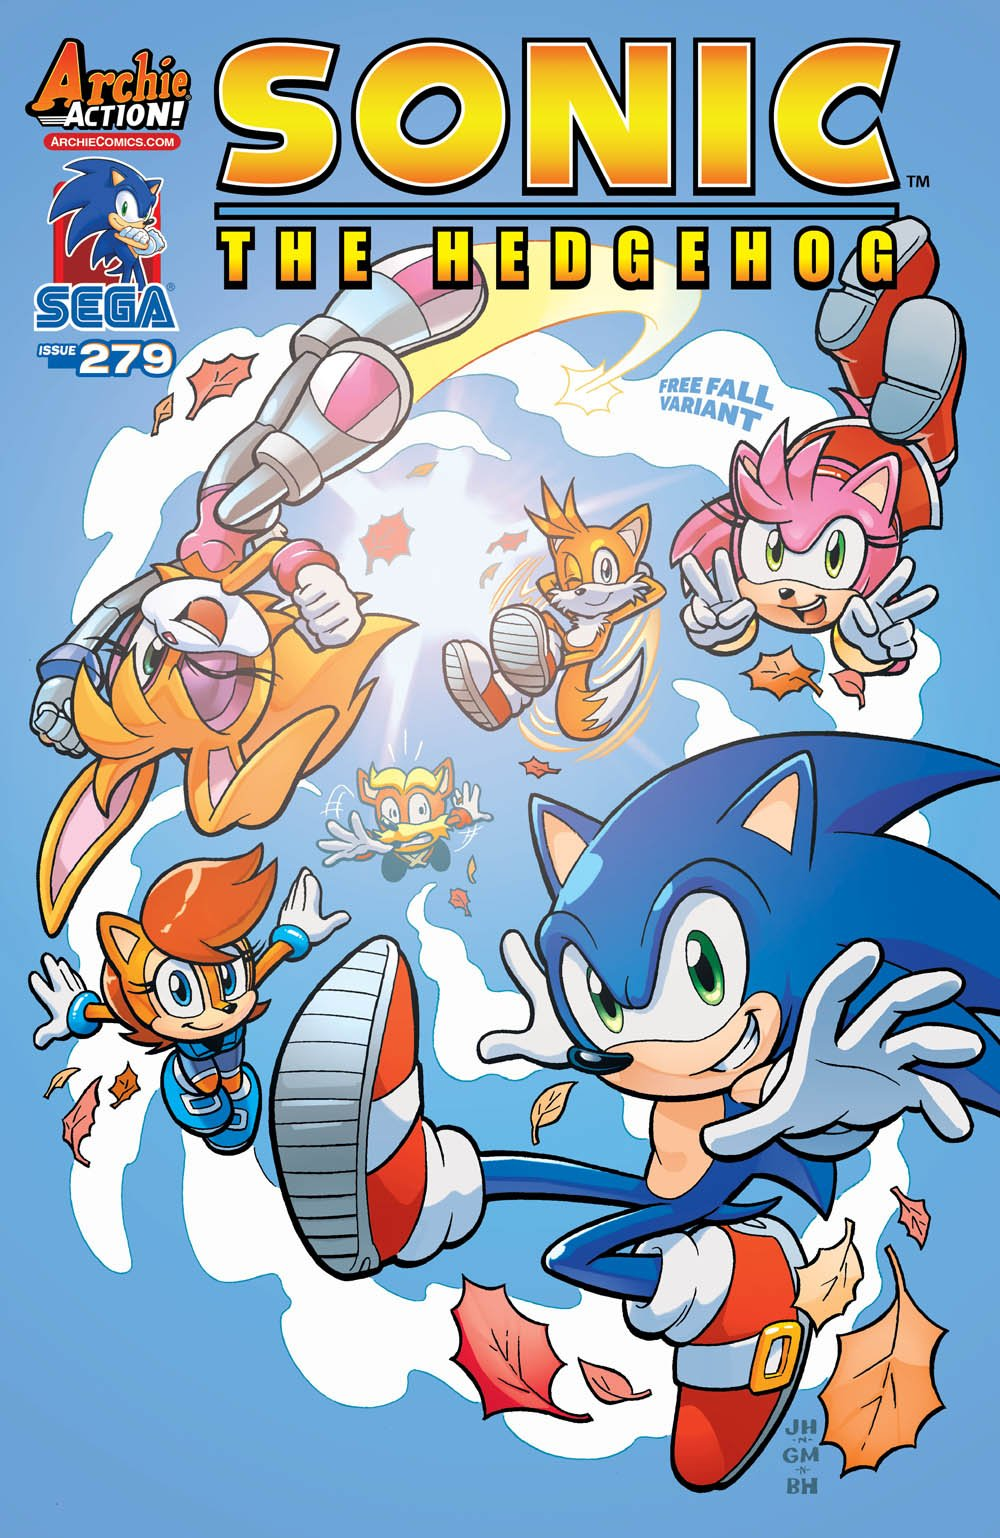 Sonic the Hedgehog 279 (May 2016) (variant edition)